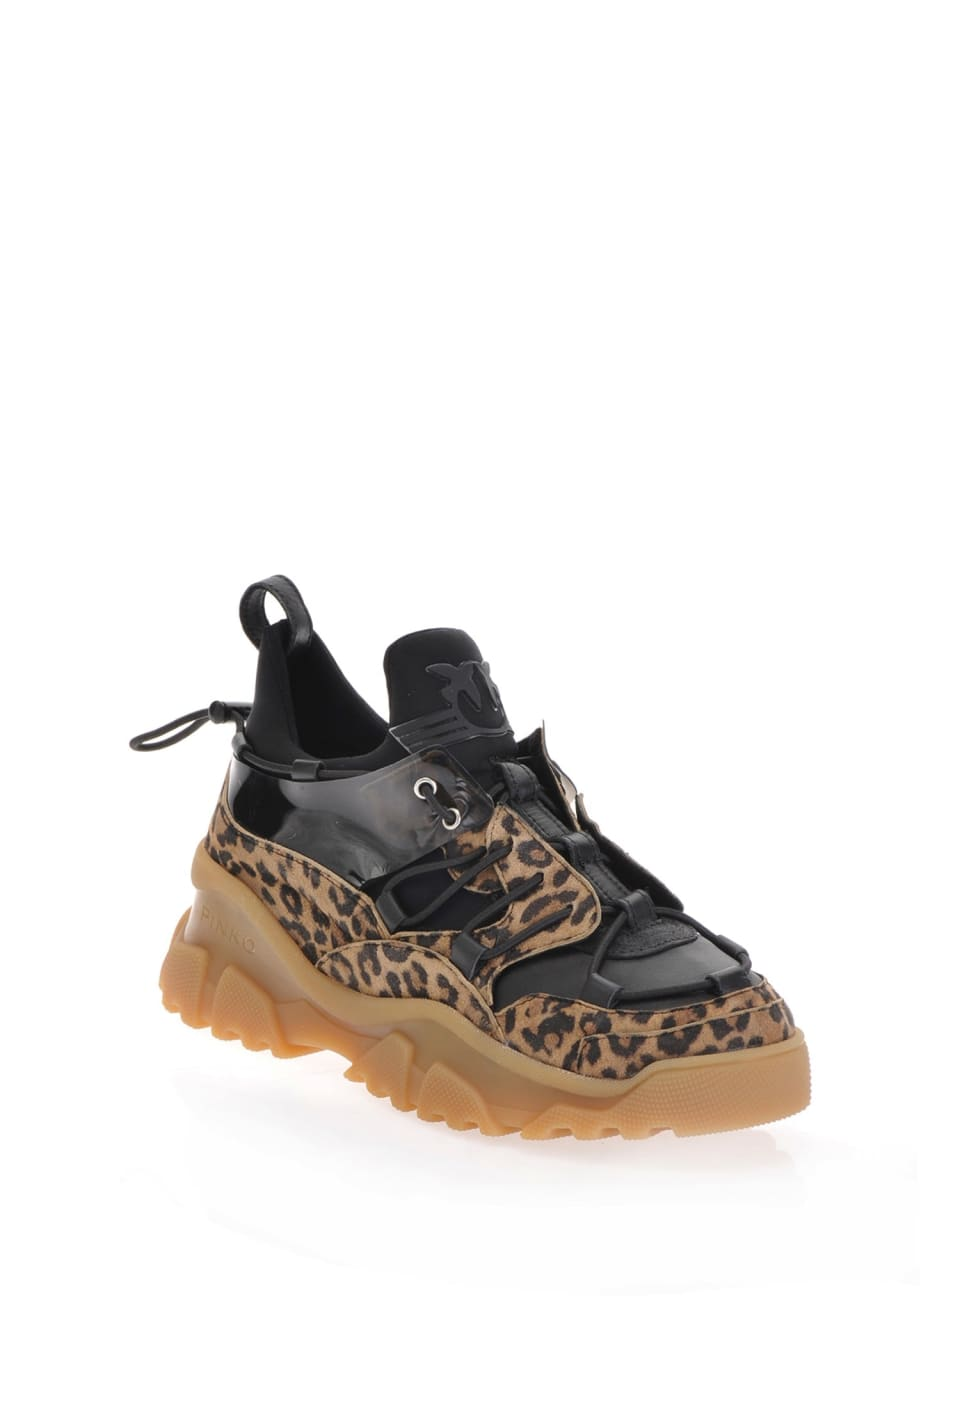 Animal pattern trek sneakers